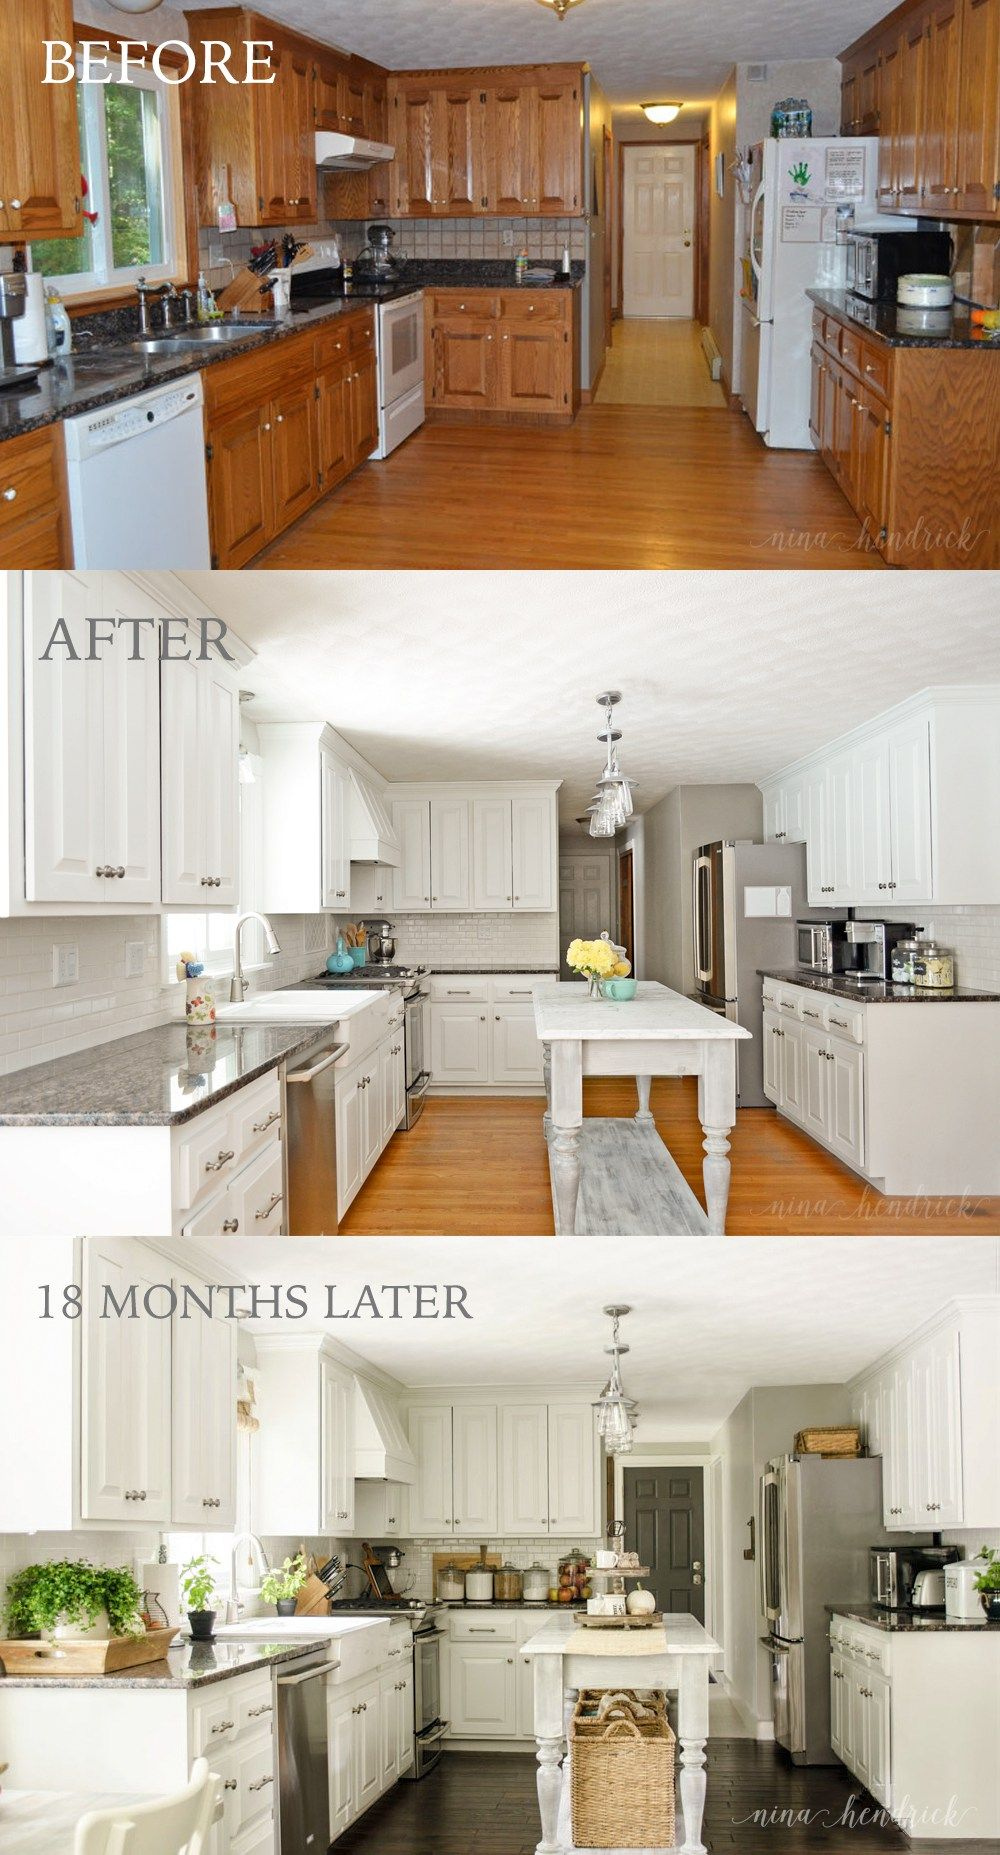 Best Kitchen Gallery: How To Paint Oak Cabi S And Hide The Grain White Paints of Before And After White Kitchen Cabinets on rachelxblog.com